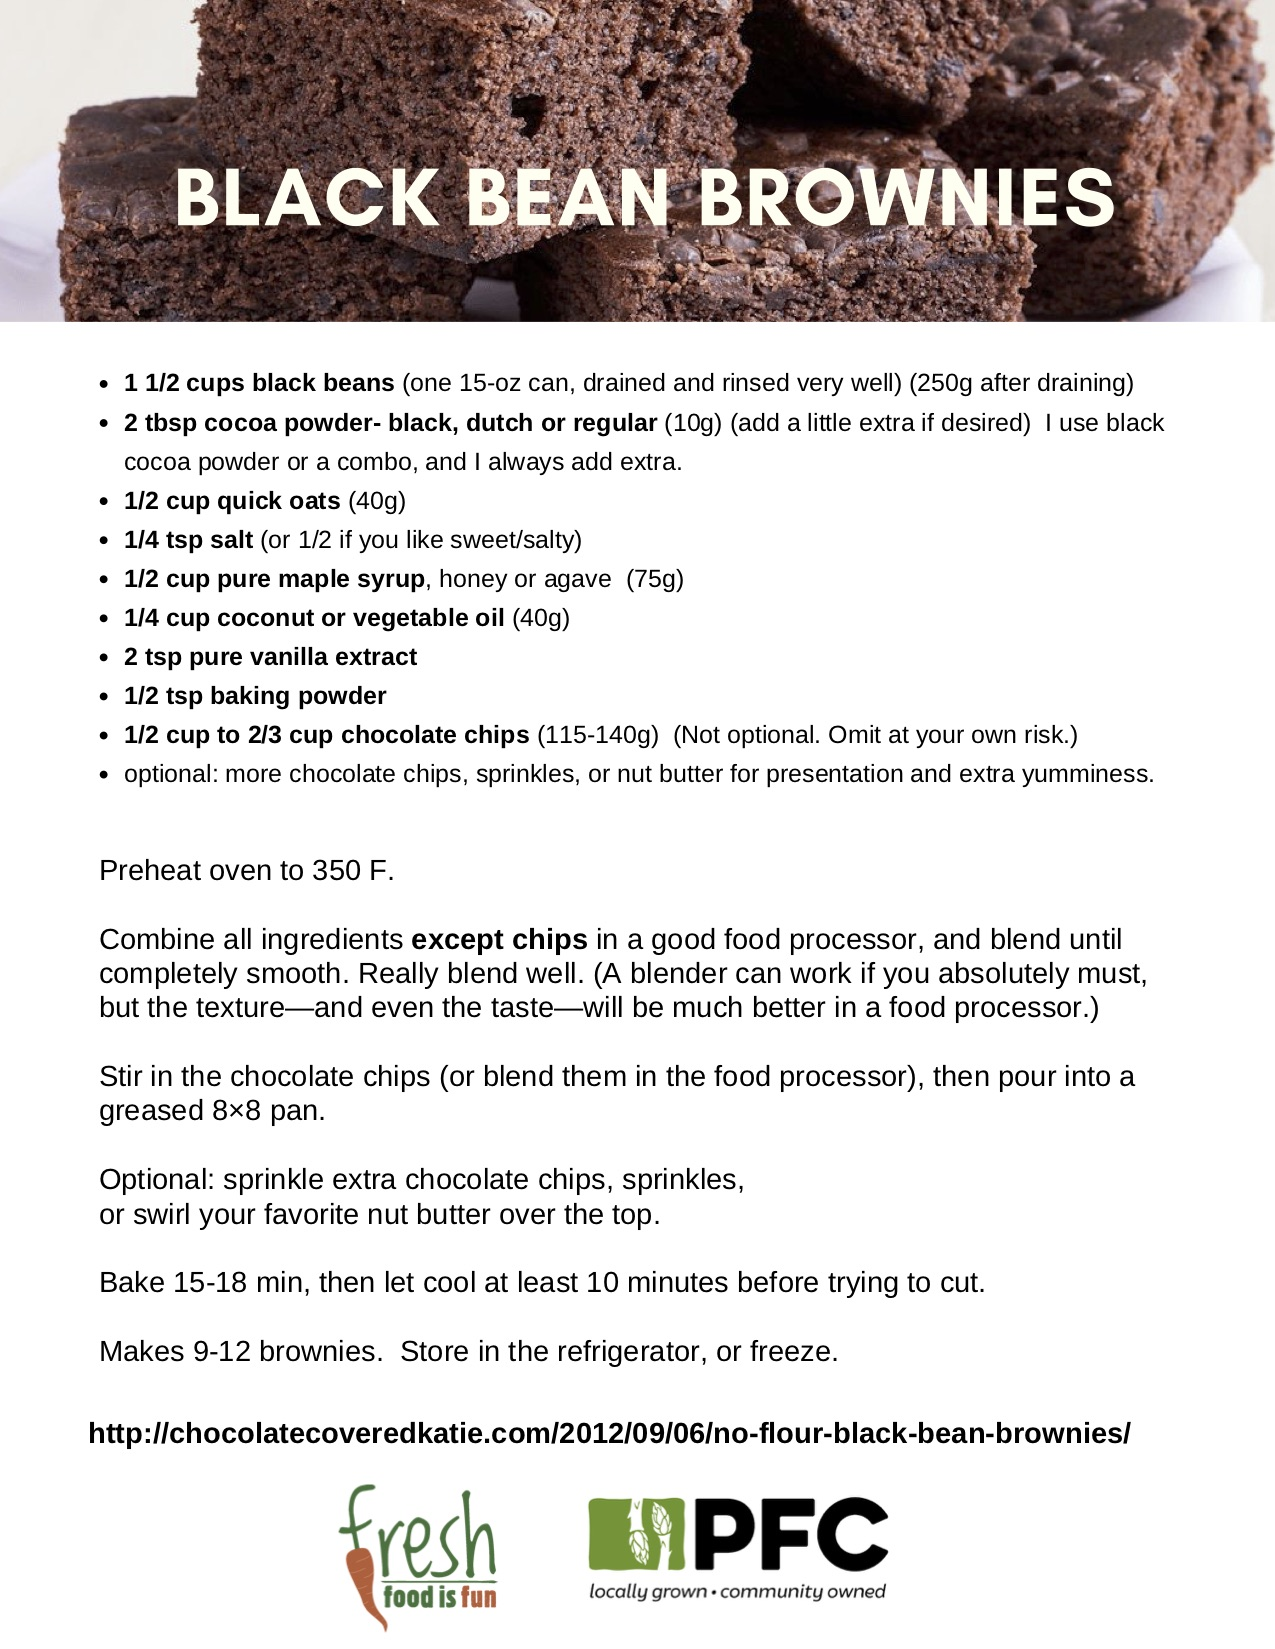 black bean brownies pic.jpg